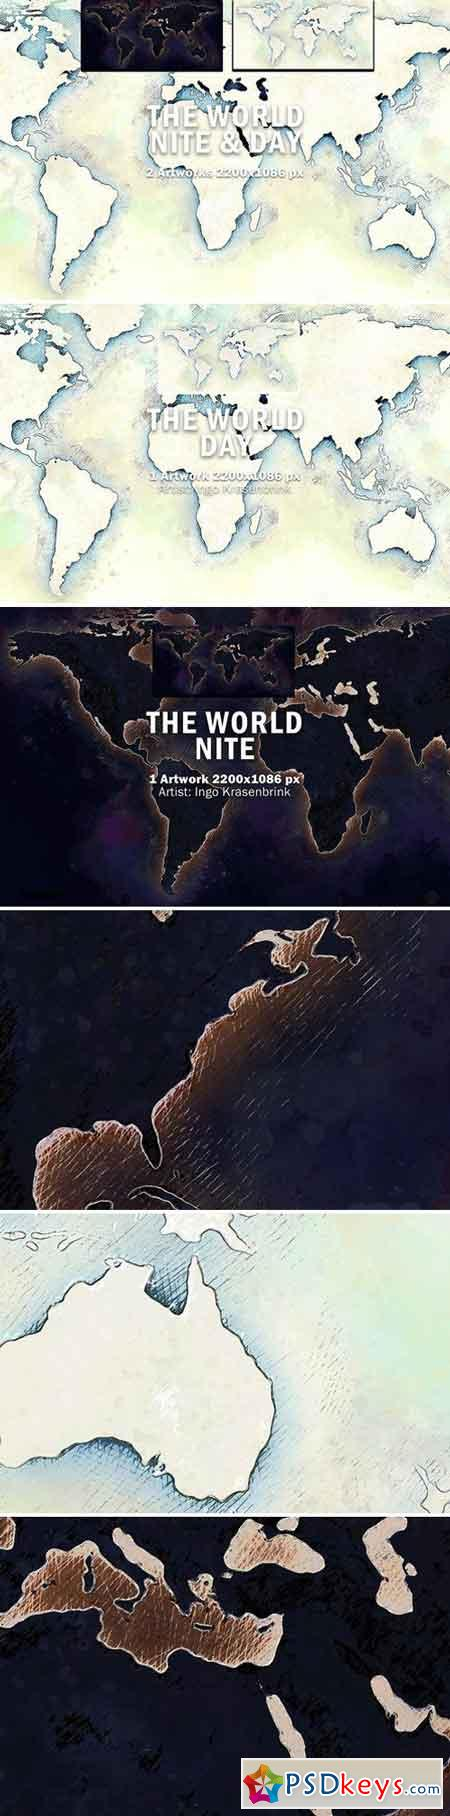 World Map Night & Day Illustration 2022009